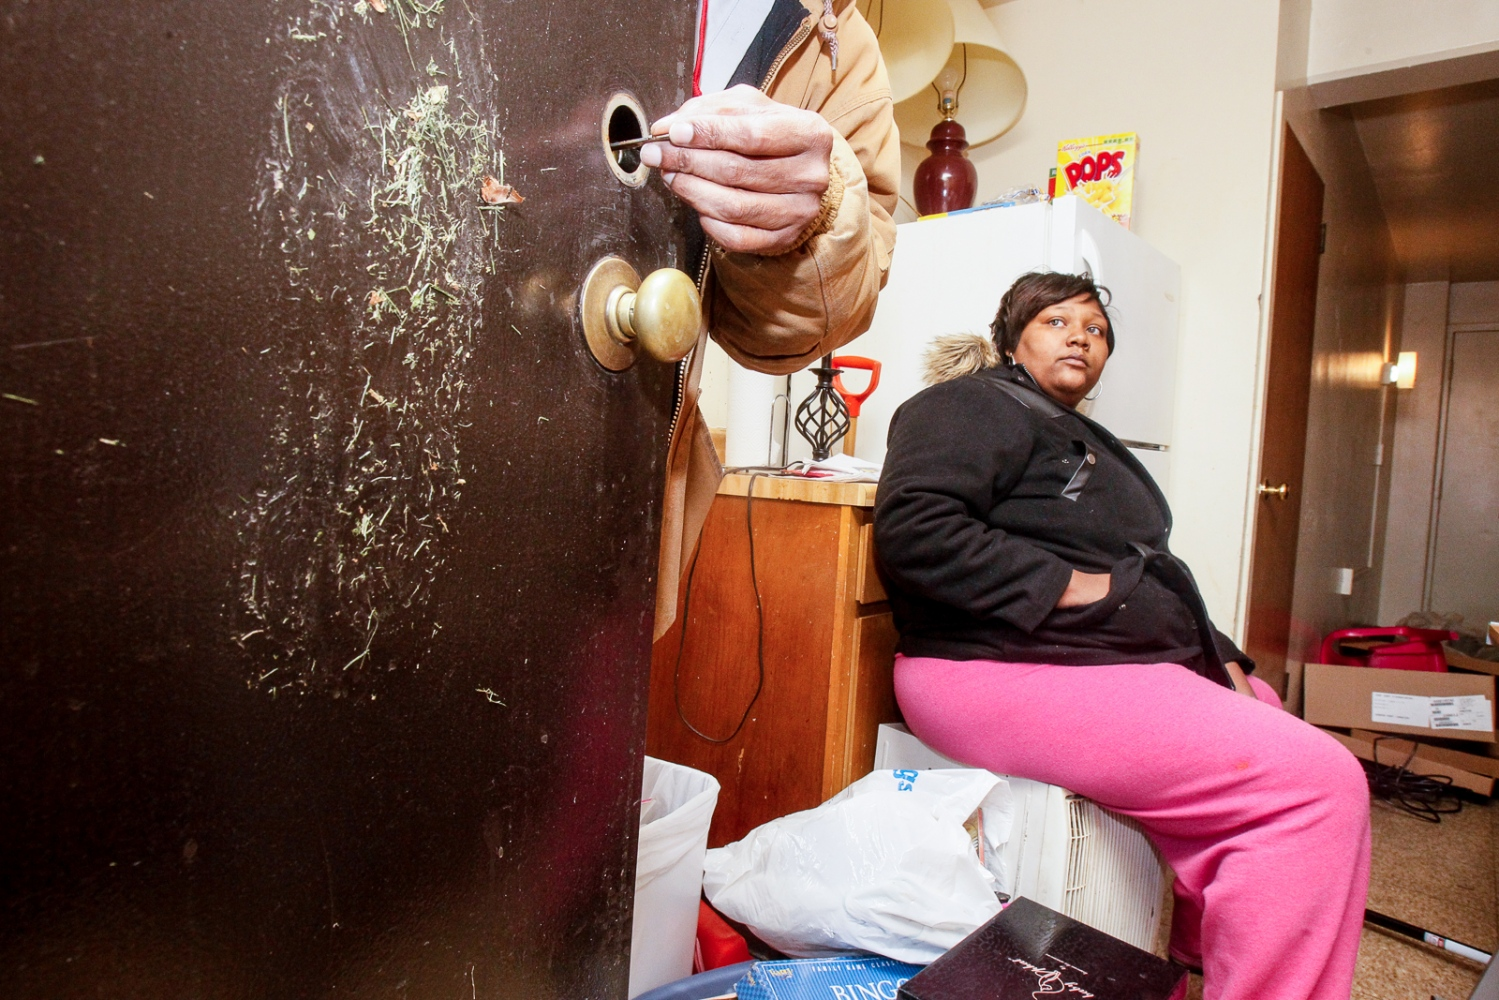 Tierra Nelson watches as a maintenance man repairs her back door on Sunday, Dec. 11, 2011 after burglars kicked in the door while she was gone.